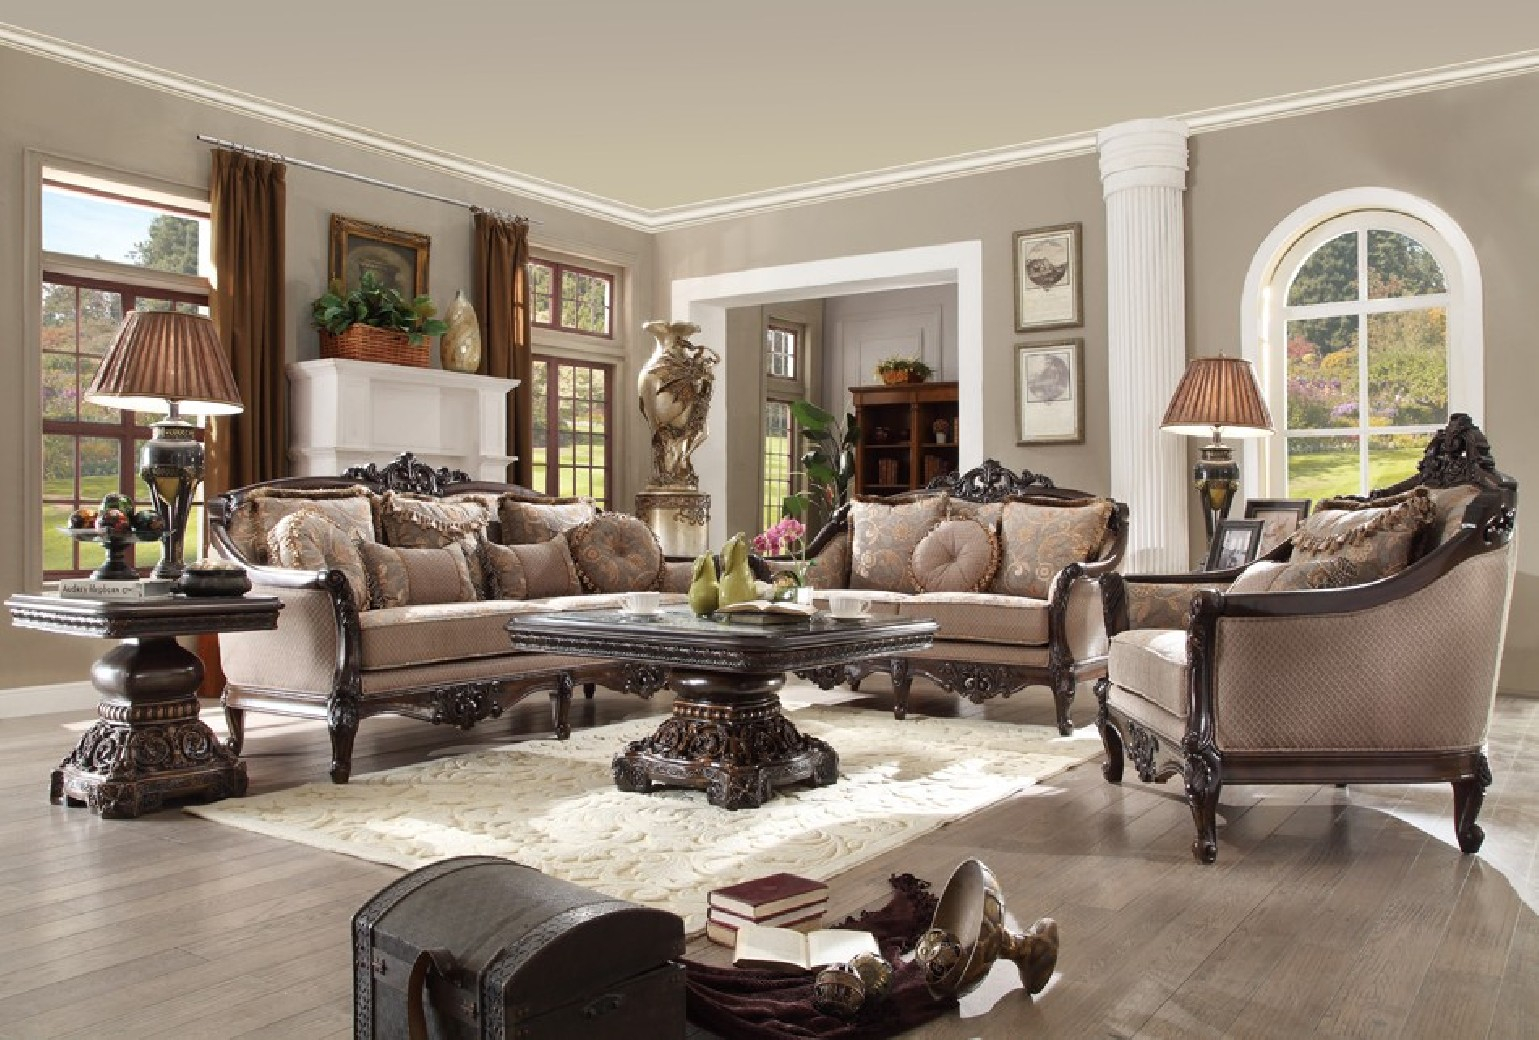 Hd 09 Homey Design Upholstery Living Room Set Victorian European Classic Design Sofa Set within 10 Clever Ideas How to Build Victorian Style Living Room Set